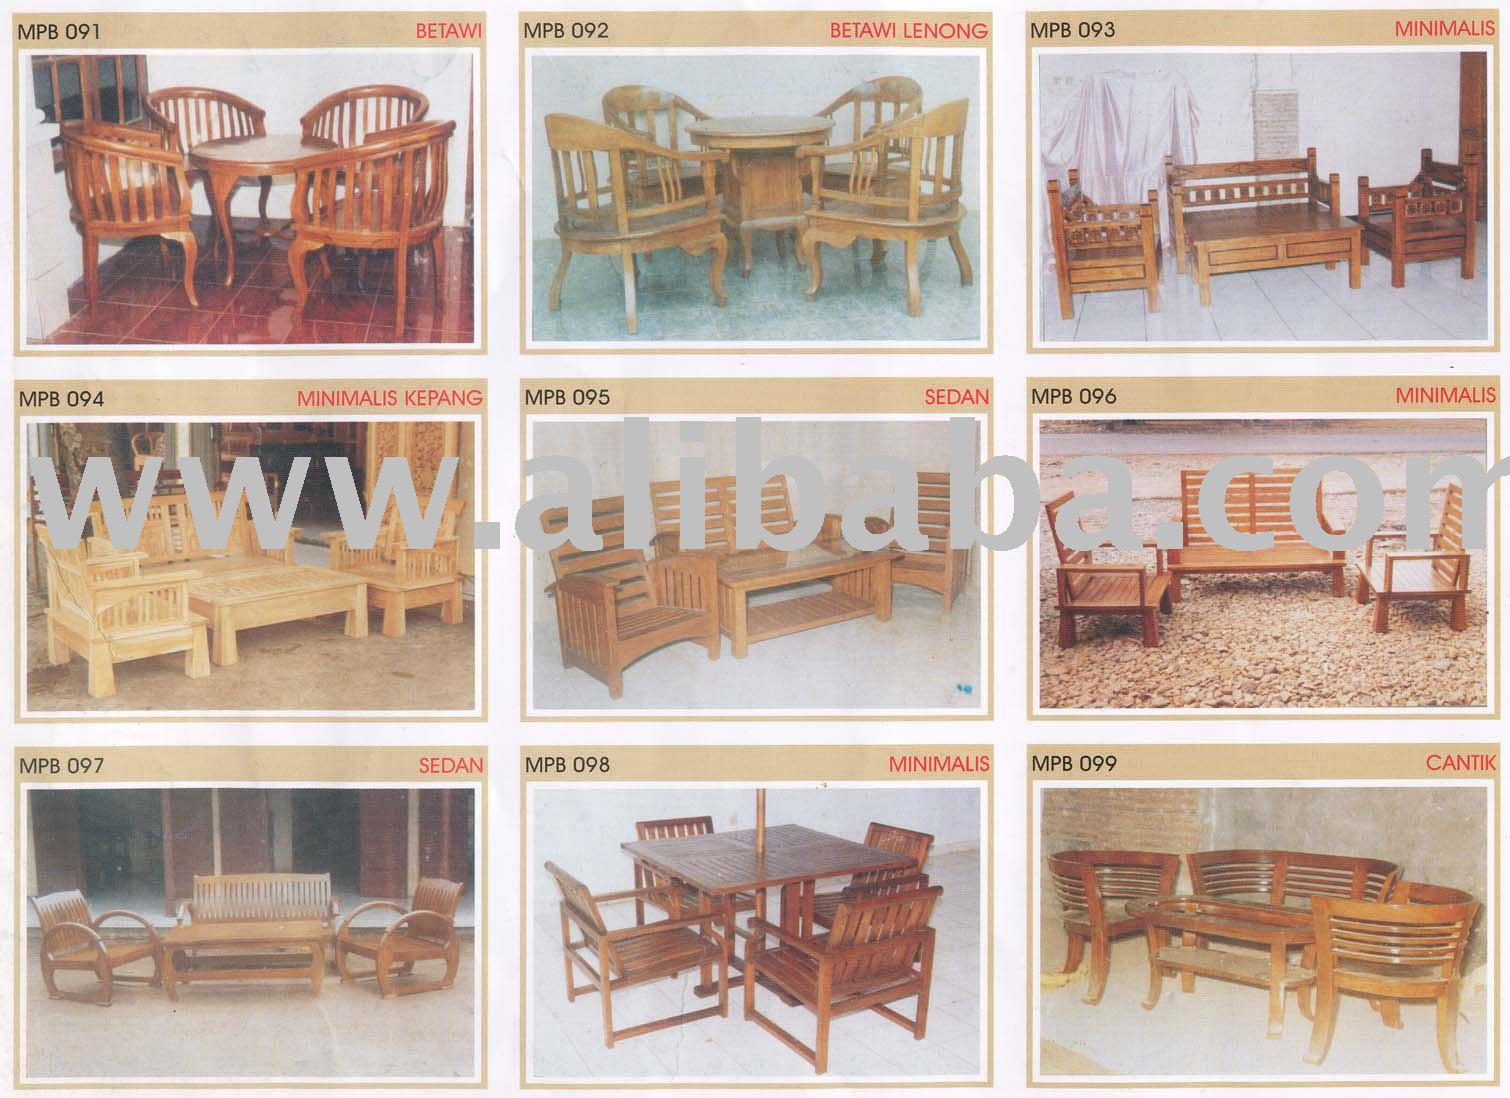 excellent rudy furniture oldcigaret info rudy furniture montgomery al qnws  info with furniture stores montgomery al. Furniture Stores In Montgomery   penncoremedia com